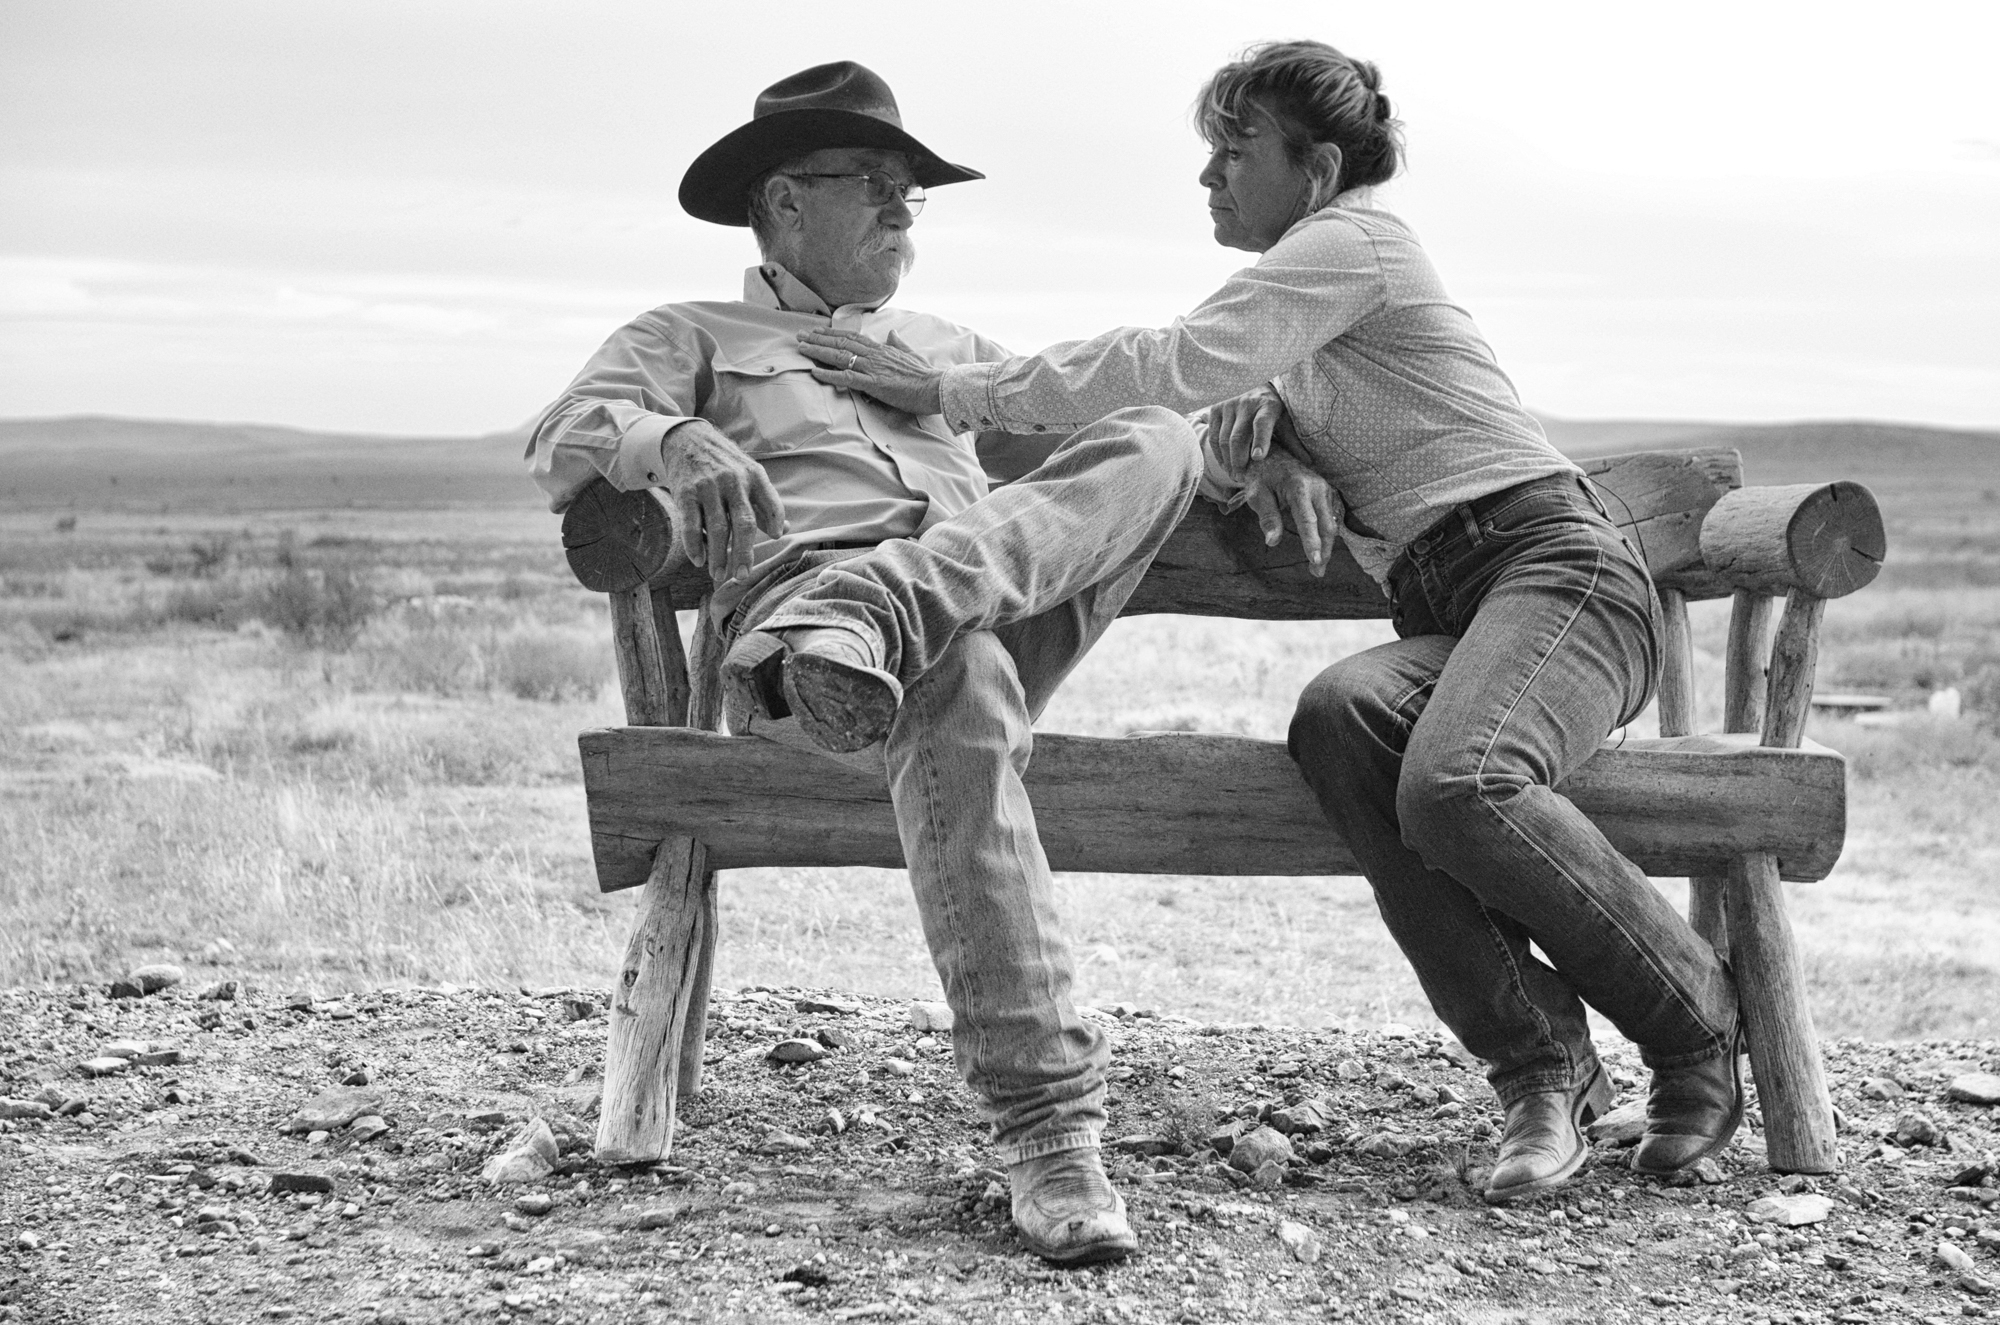 Joel and Sylvia Nelson, land owners on the route of the pipeline, bear a heartfelt connection to the land and fear the pipeline could destroy what is most special about it. They were among the first ranchers to stand in opposition to the pipeline.